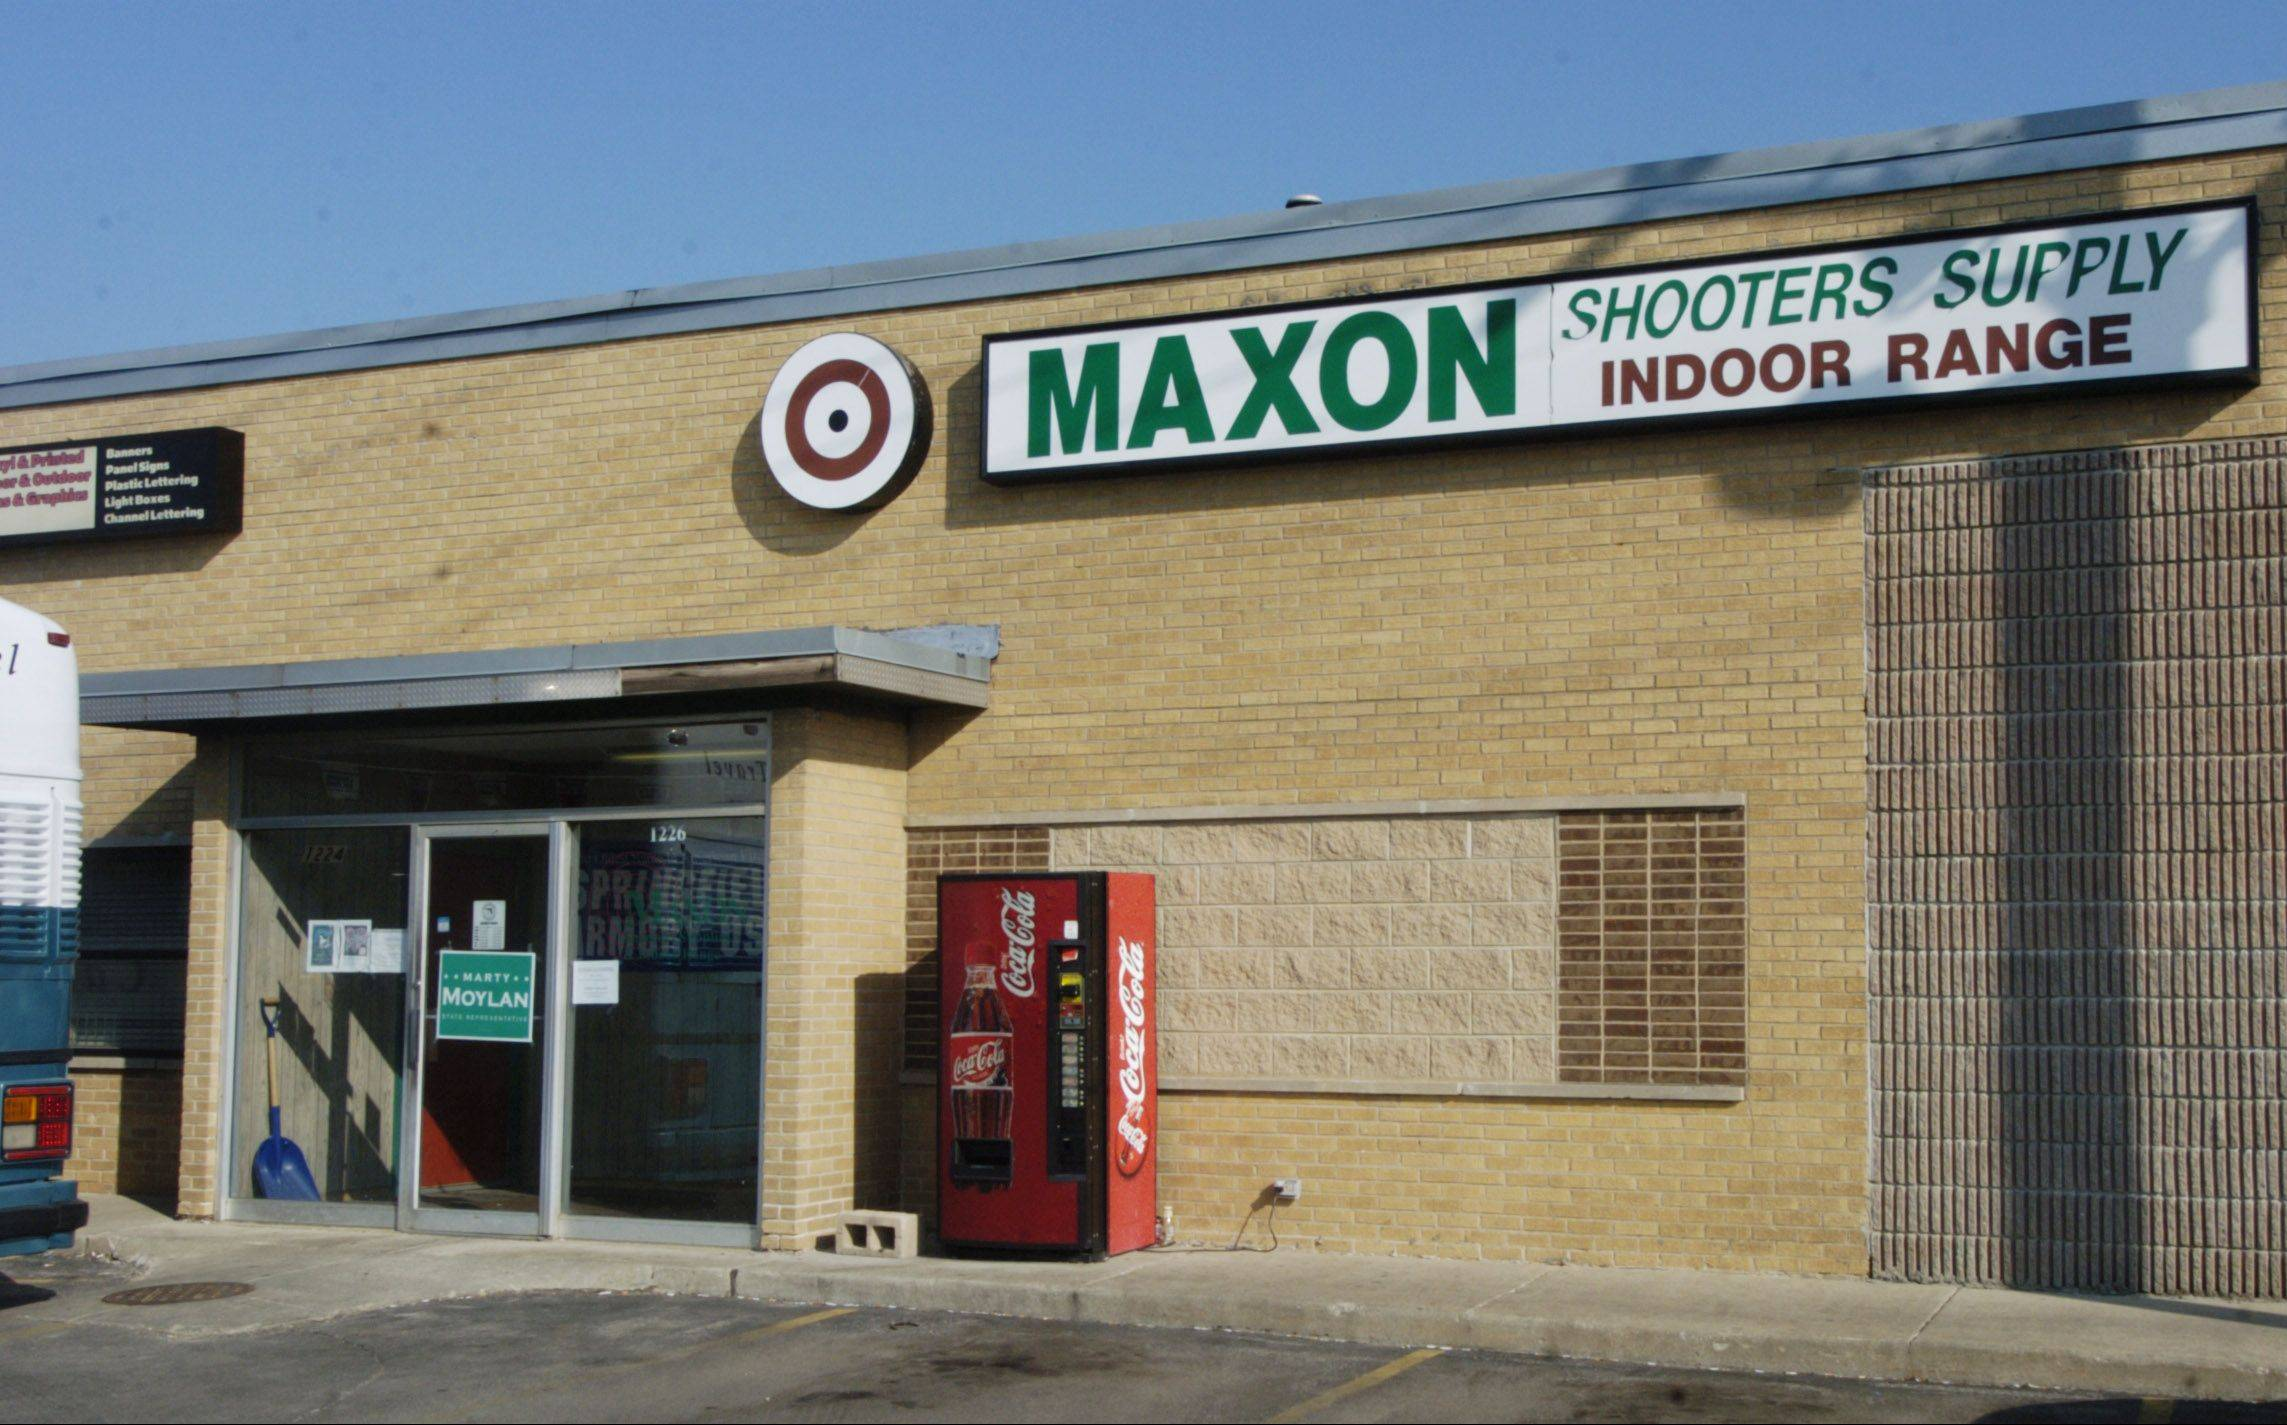 About 200 firearms were stolen earlier this year in a burglary of Maxon Shooters Supply and Indoor Range in Des Plaines. The break-in has city officials concerned about security measures at the business.